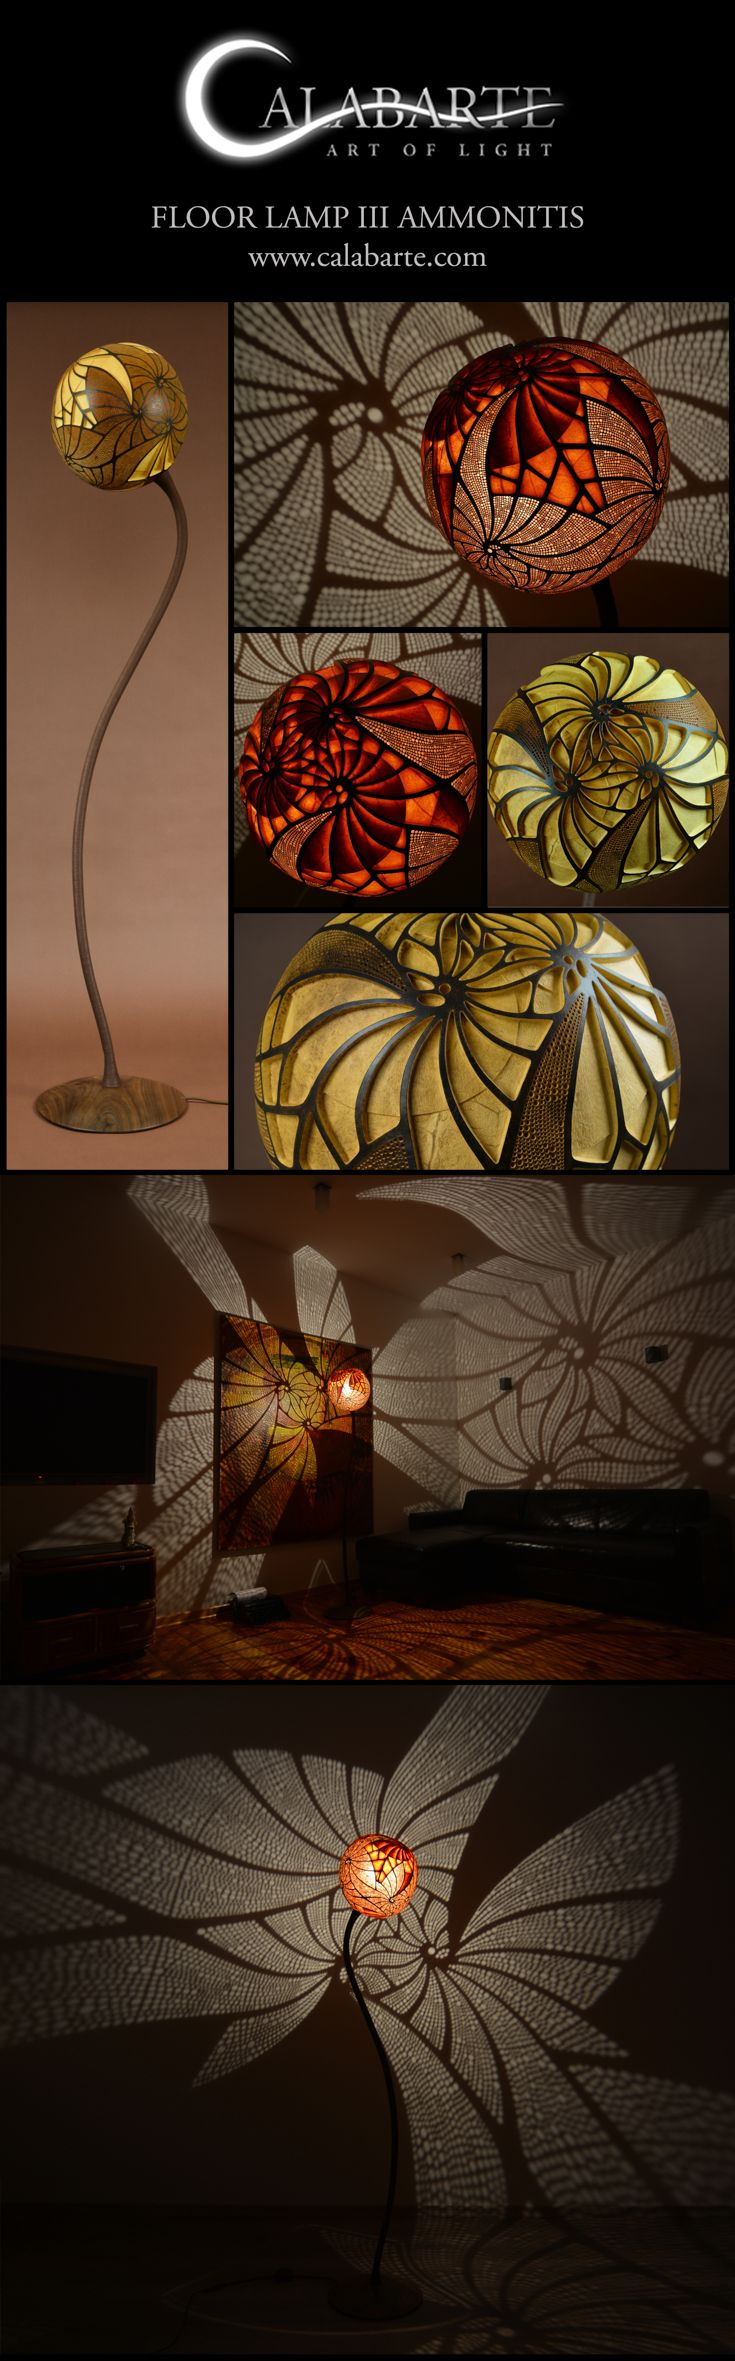 134 best Luminaires images on Pinterest | Light fixtures, Lamps and ...